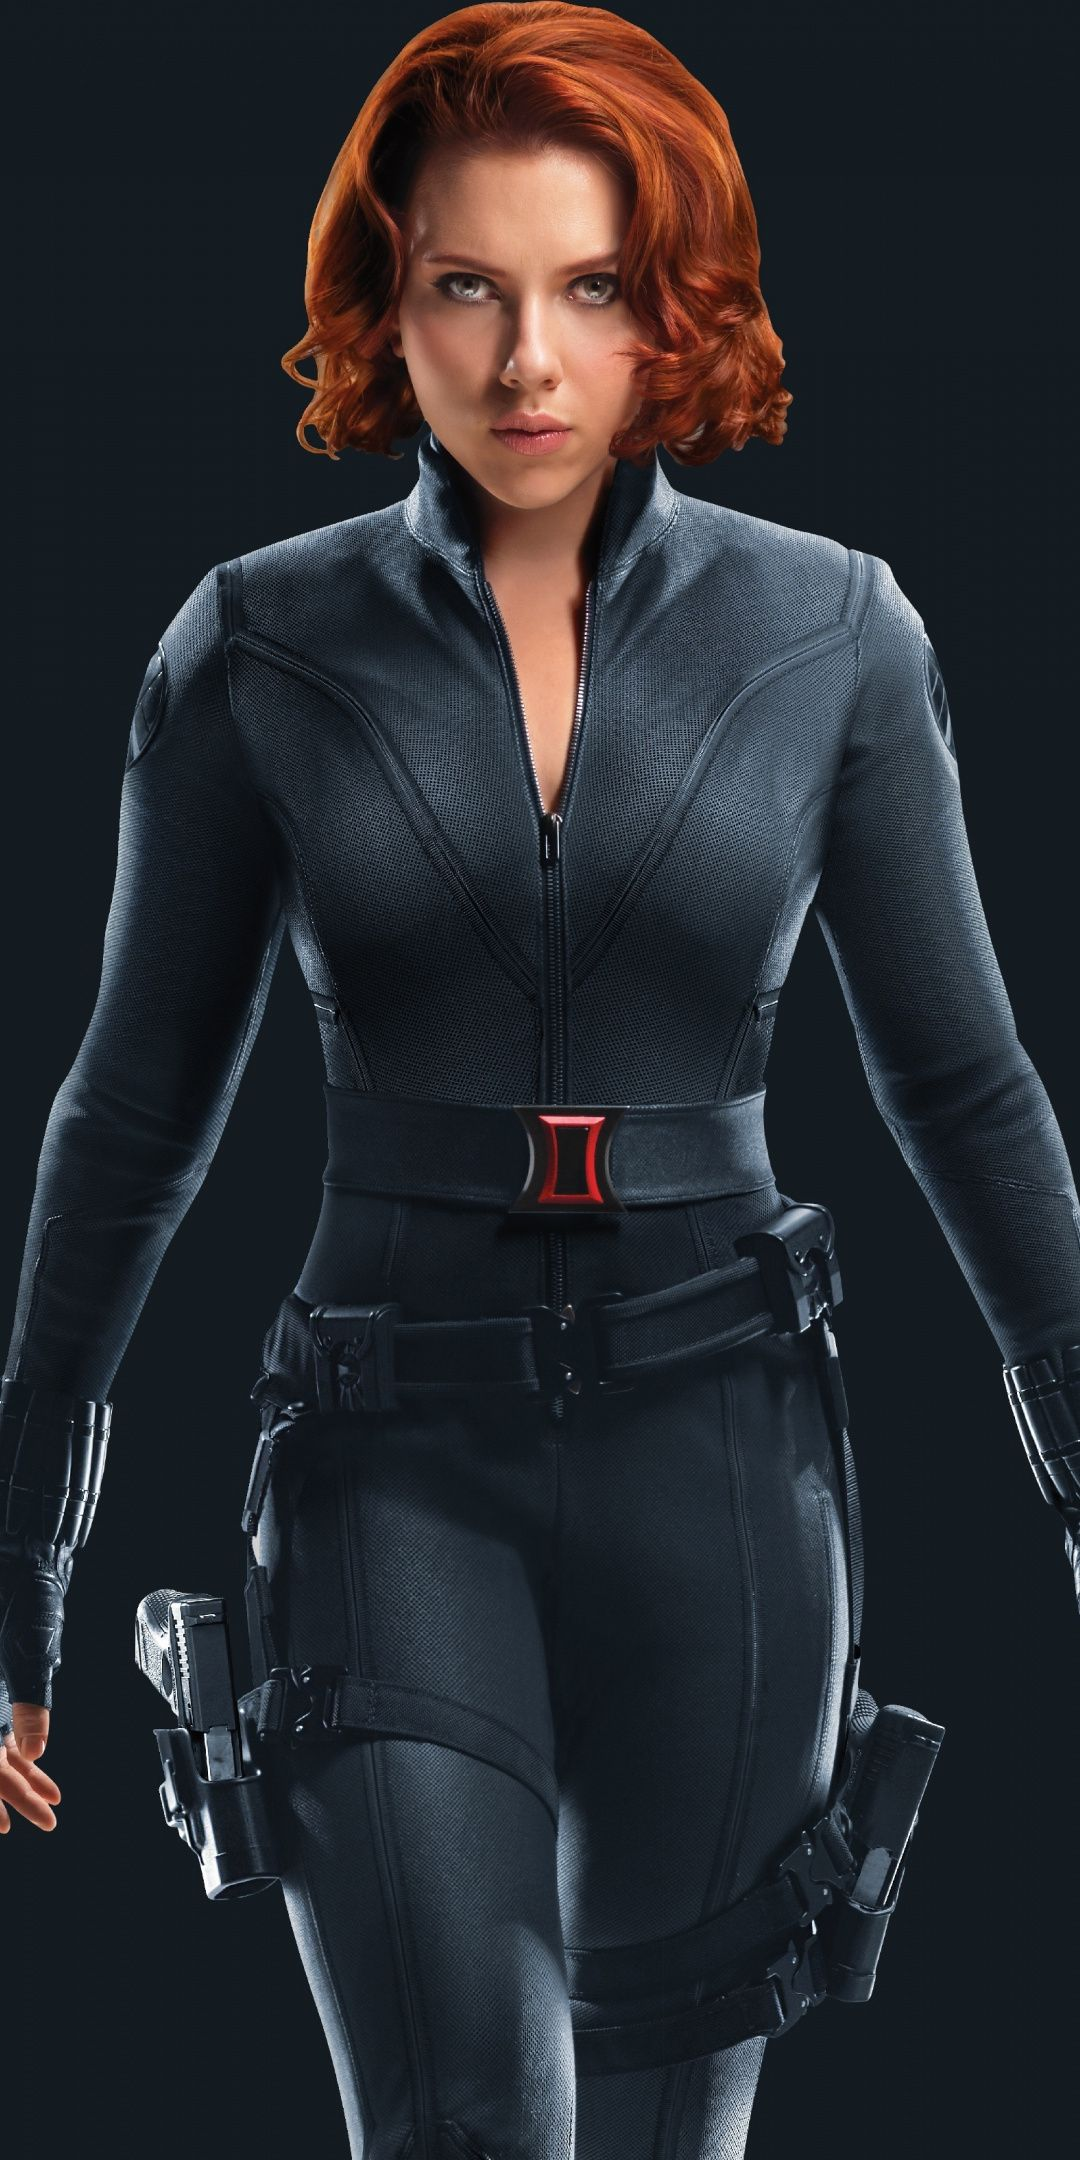 Dark Black Widow Scarlett Johansson Marvel Comics